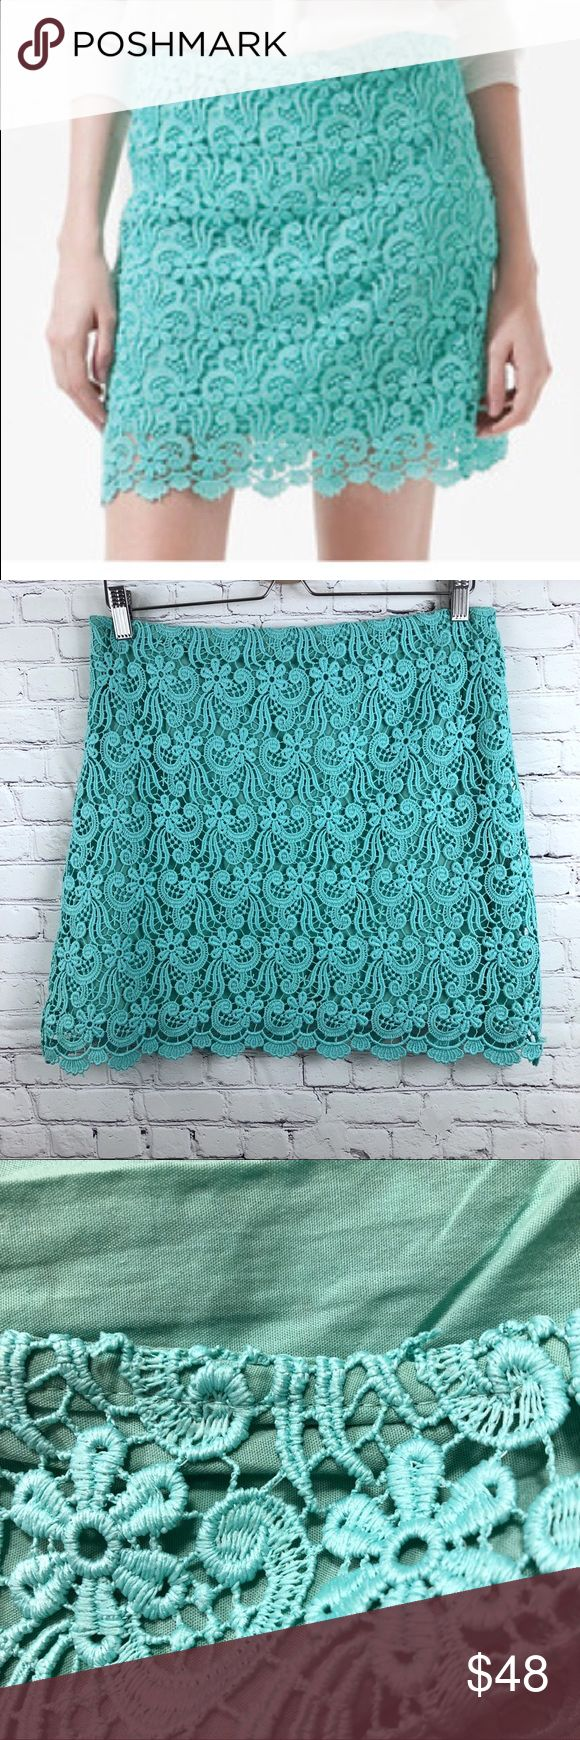 """Zara Guipure Lace Mini Skirt Aqua Blue  Size M Zara Guipure Lace Mini Skirt Aqua Blue  Size M. Size Zipper. Lined. Scallop Hem. Measurements approximate laying flat  Waist :16"""" Length 17"""" Gently pre-owned. Excellent condition. Please see all photos for details. Zara Skirts Mini"""